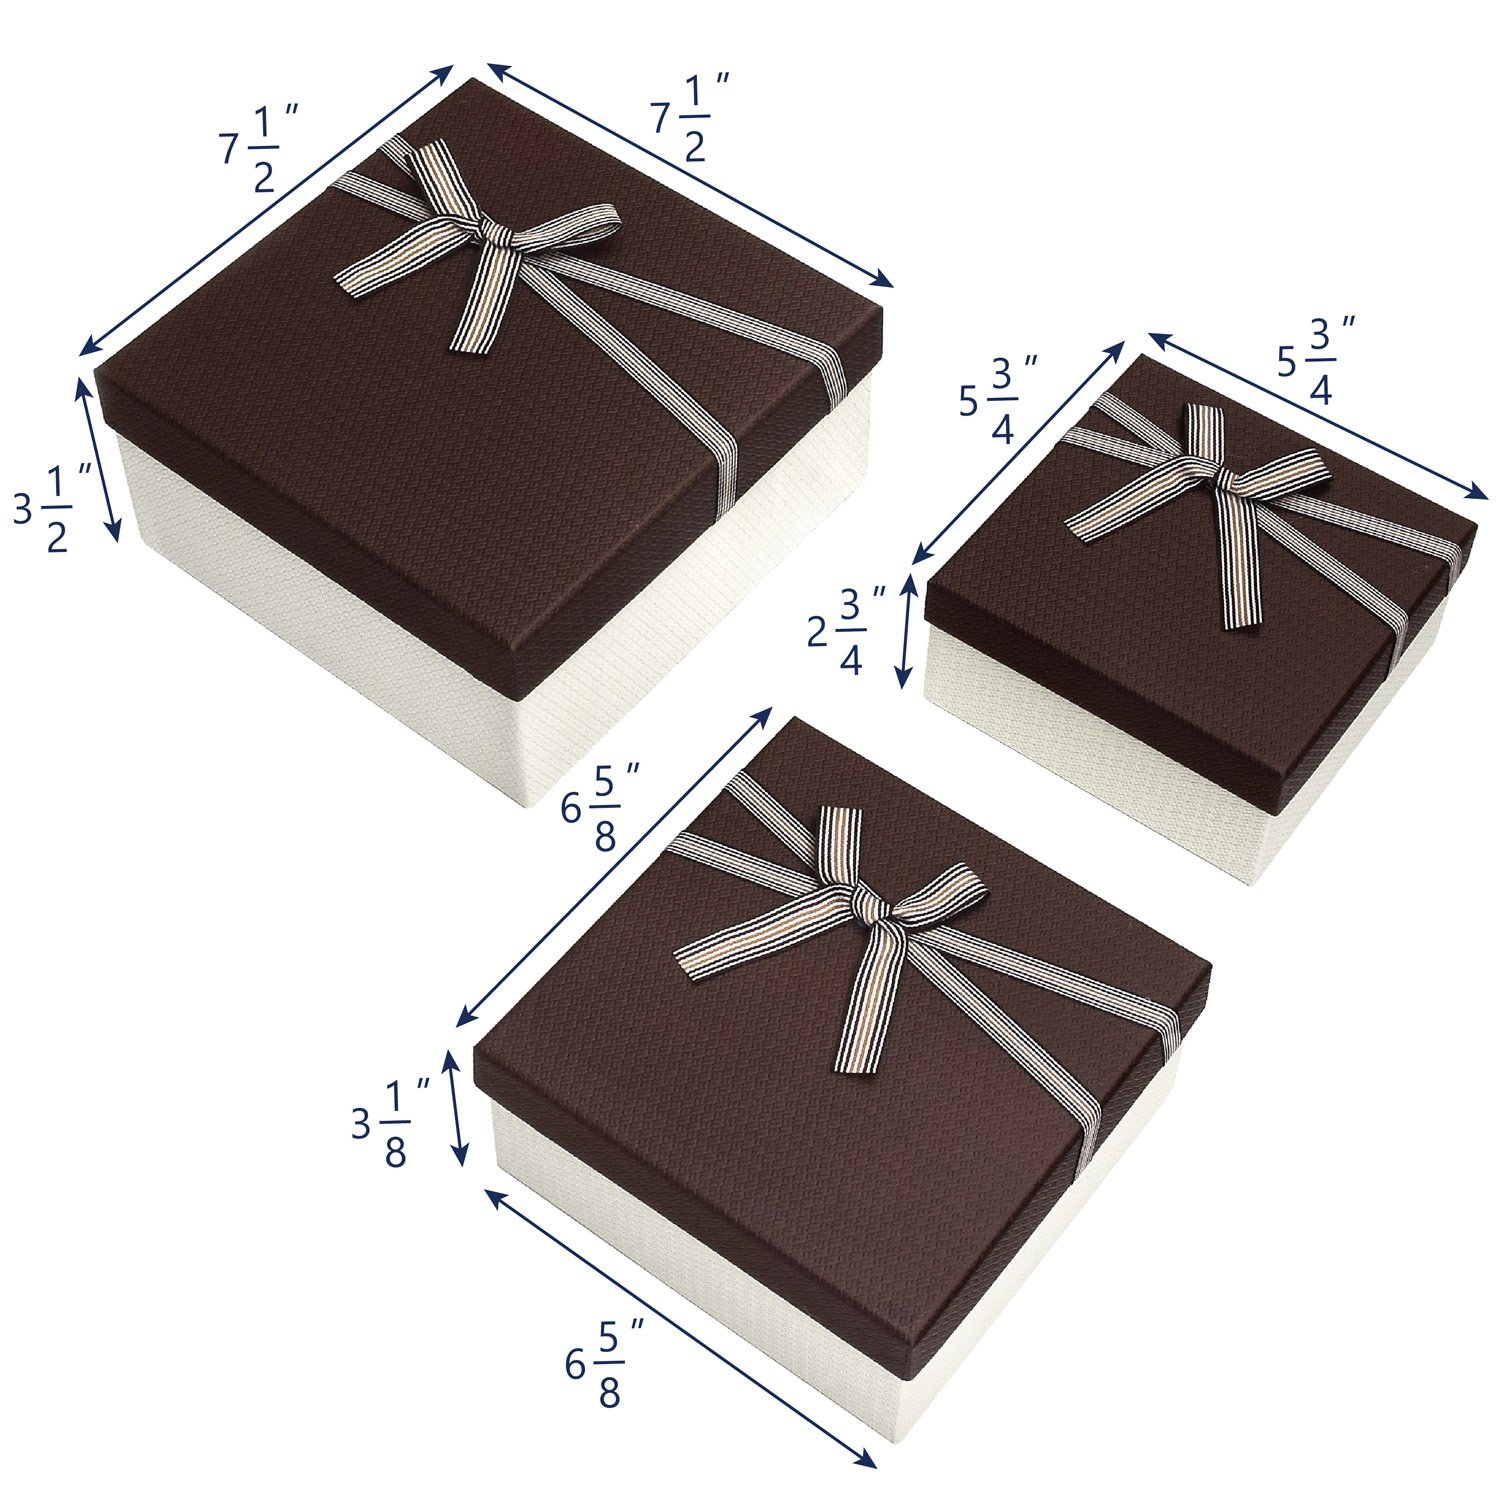 Square Nesting Gift Boxes, A Set of 3,Brown Color with A Bowtie by Ikee Design (Image #4)